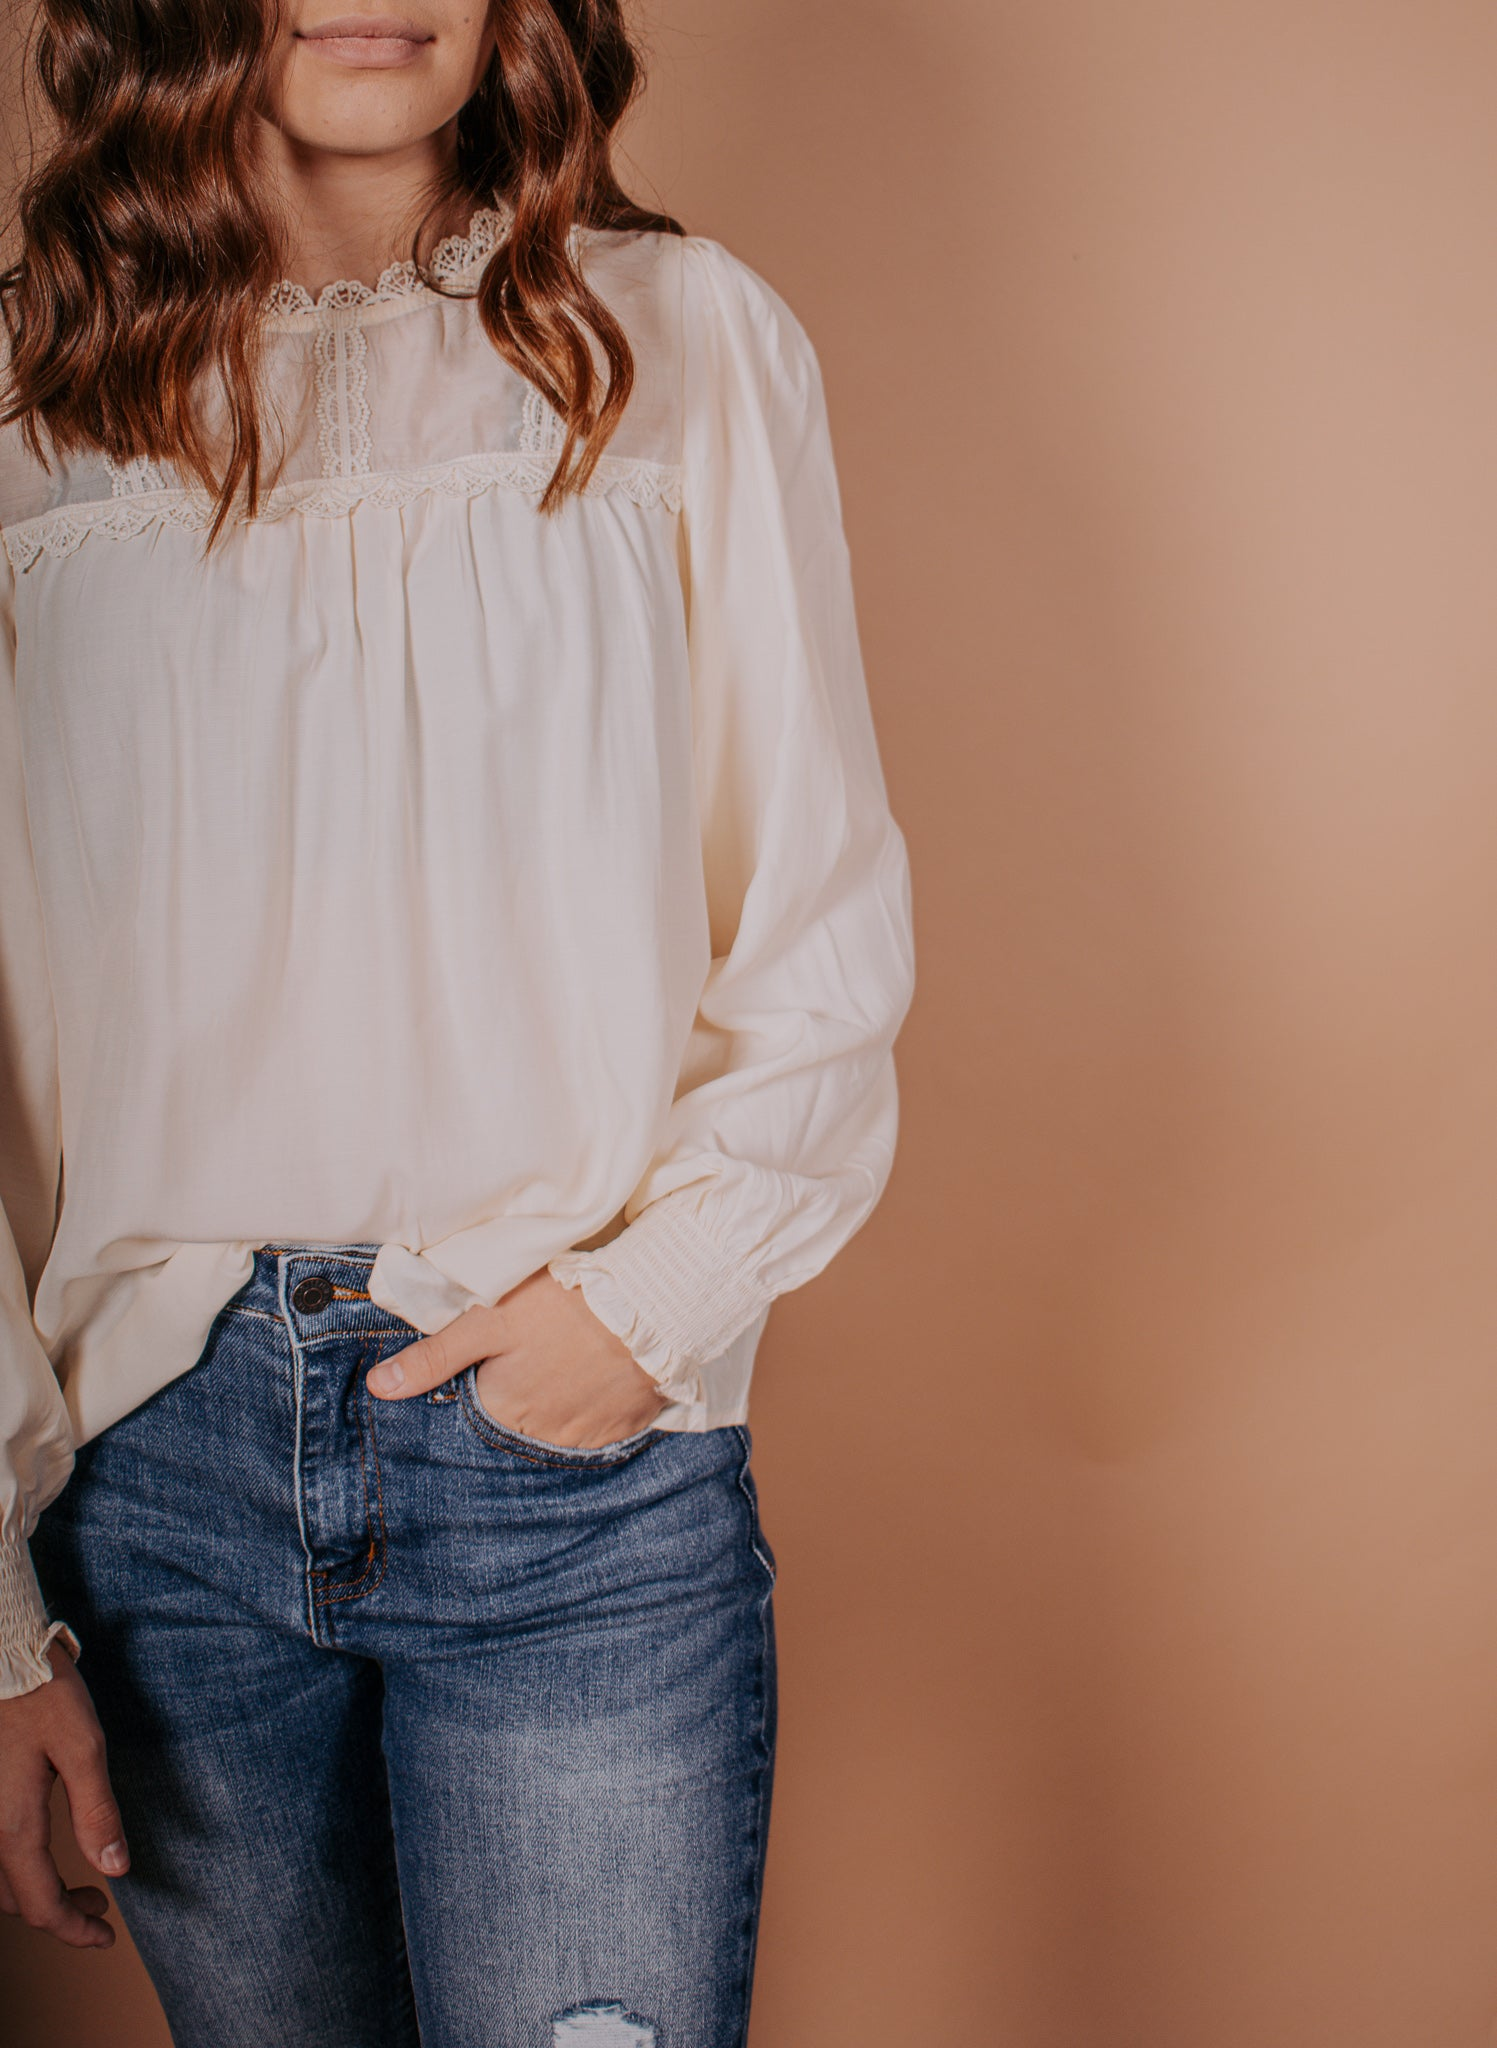 The Portland Blouse